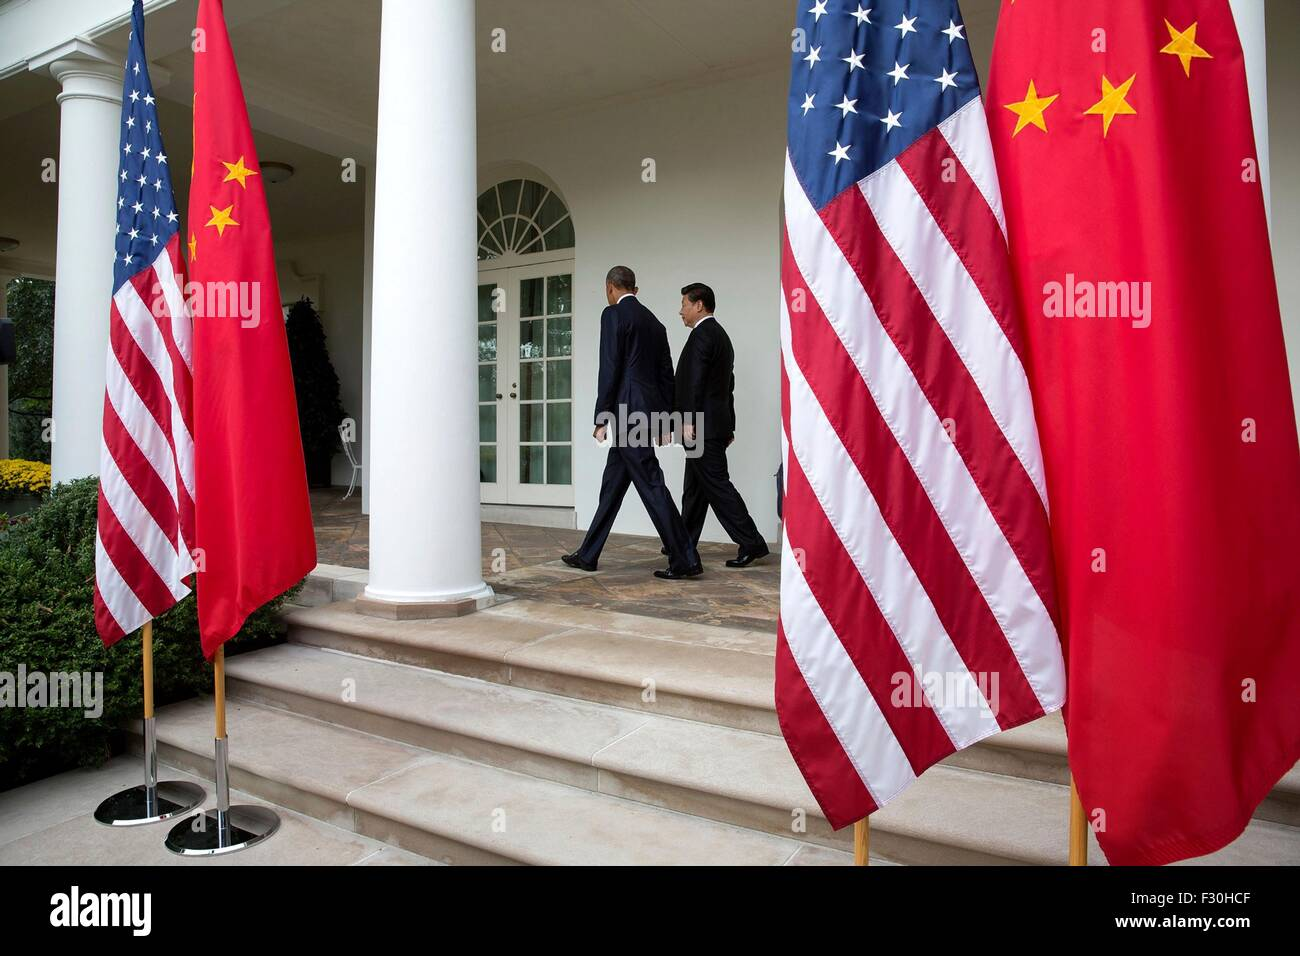 Washington DC, US. 25th Sep, 2015. U.S. President Barack Obama and Chinese President Xi Jinping walk along the Colonnade - Stock Image